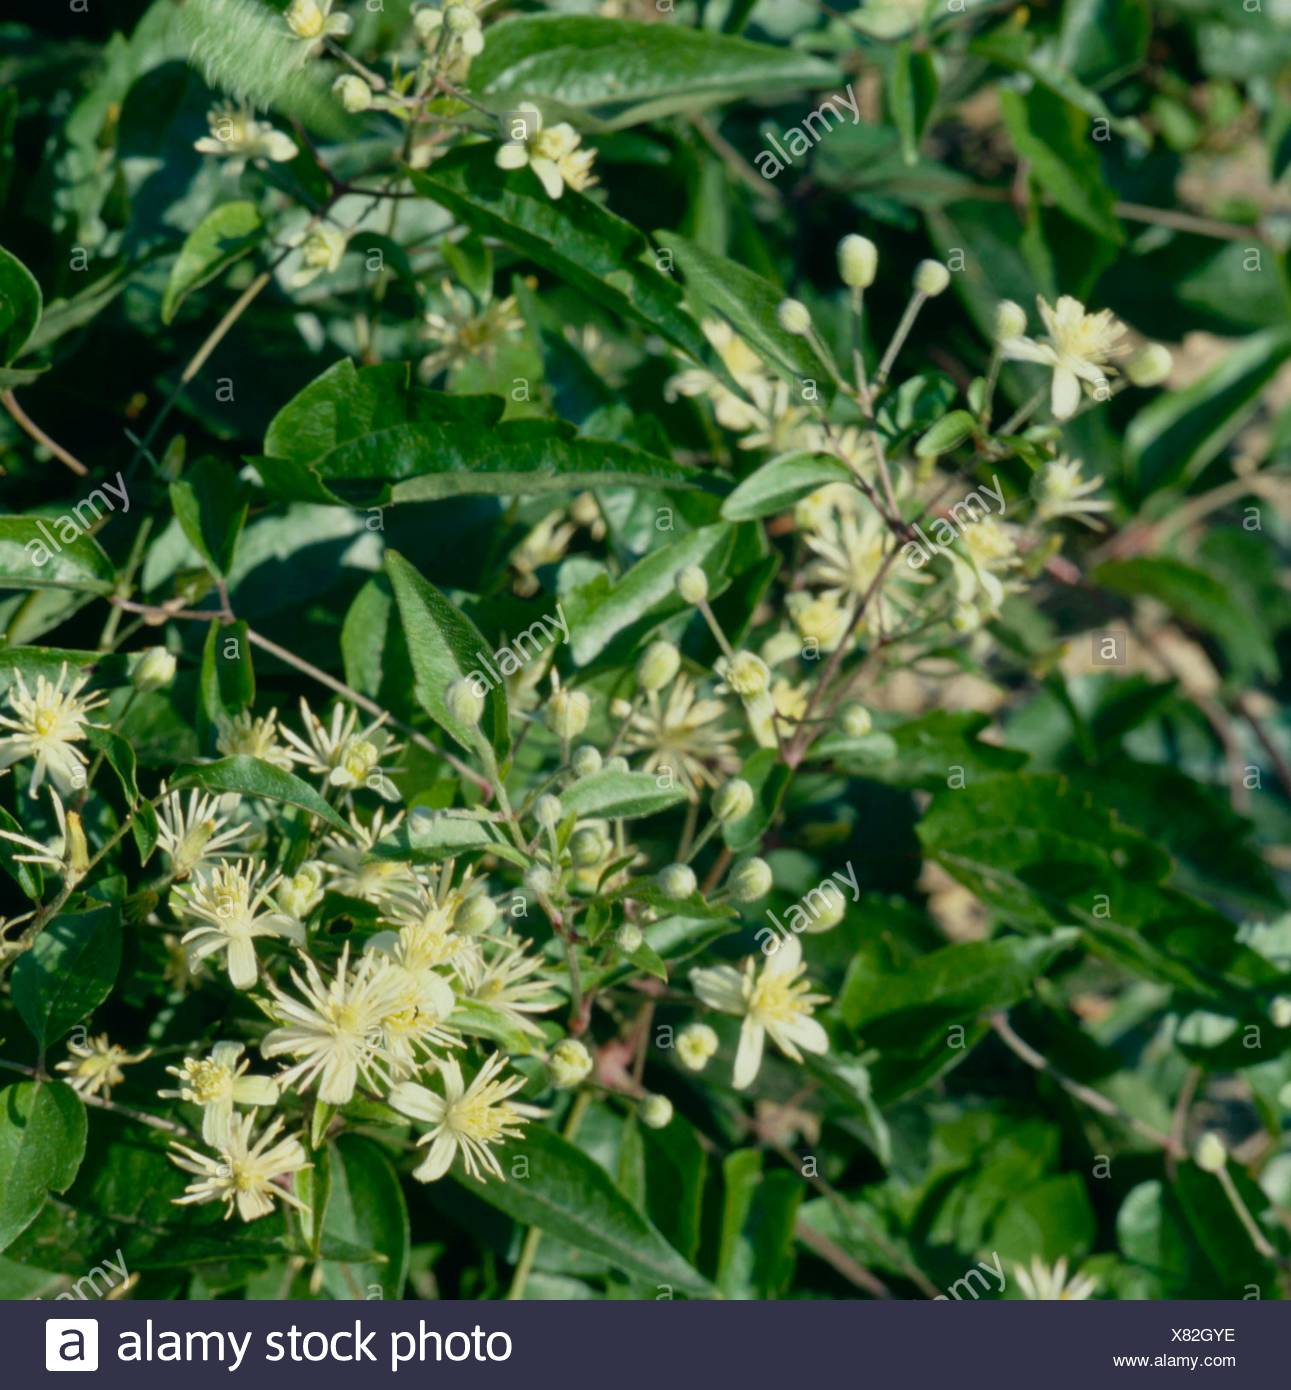 Clematis vitalba - Old Man's Beard ''Traveller's Joy'''   CLE044015 - Stock Image